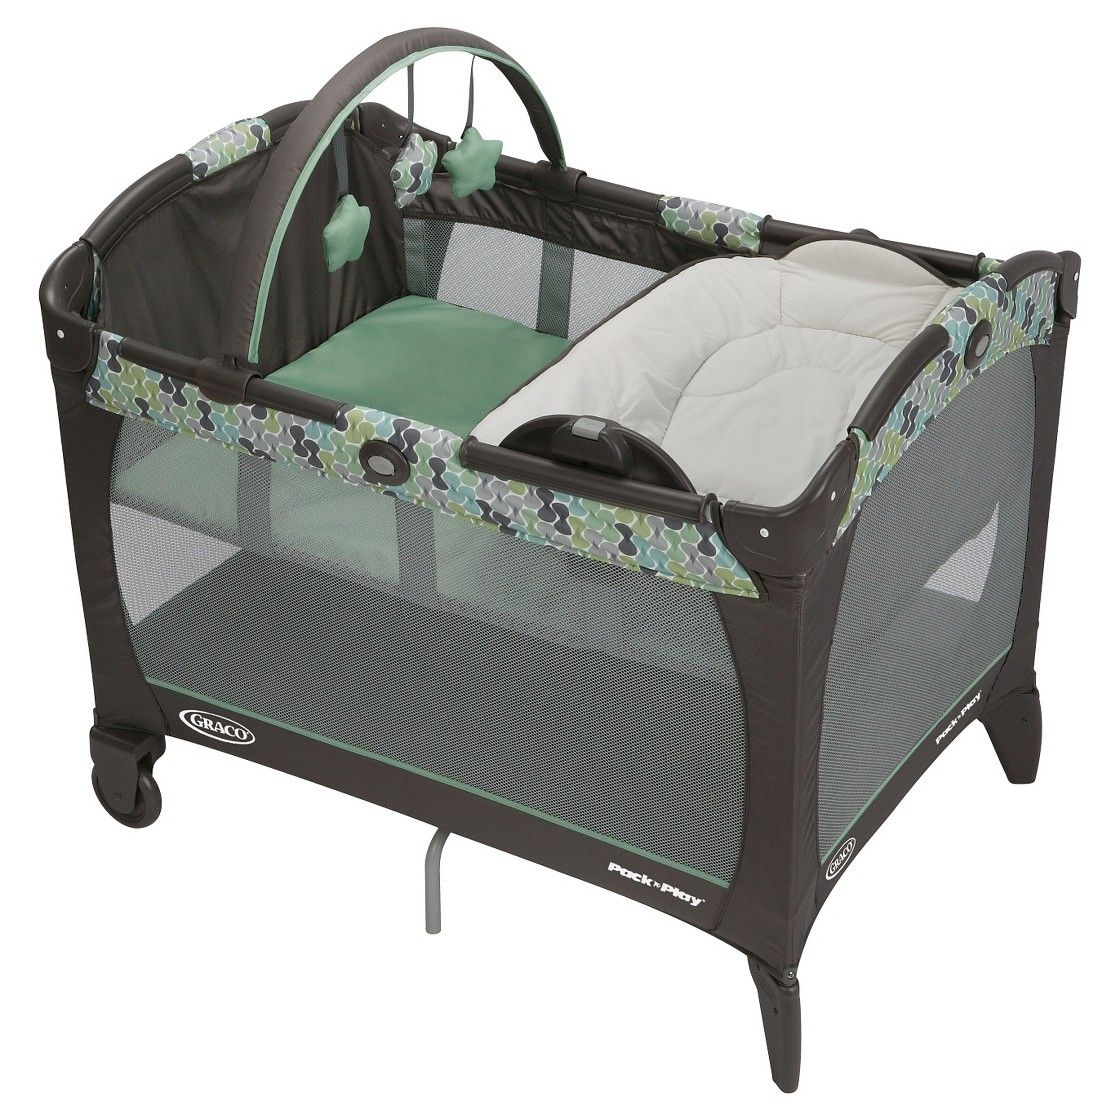 Baby crib for sale ottawa - Graco Pack N Play Playard With Reversible Napper And Changer